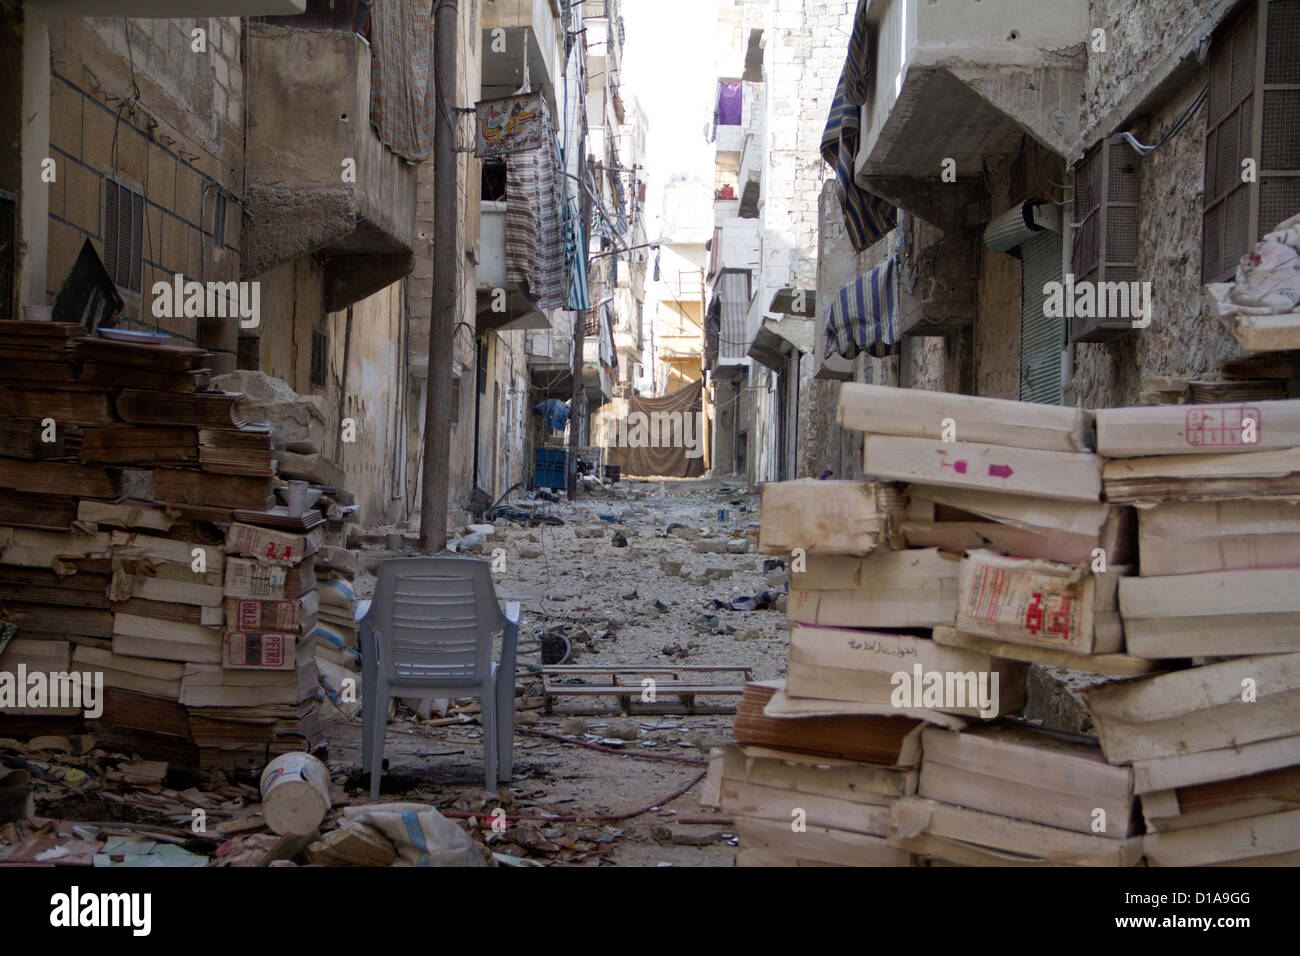 November 29 ,2012 - Aleppo, Syria: Blockades and blinds are set up on frontlines in Amaria. - Stock Image